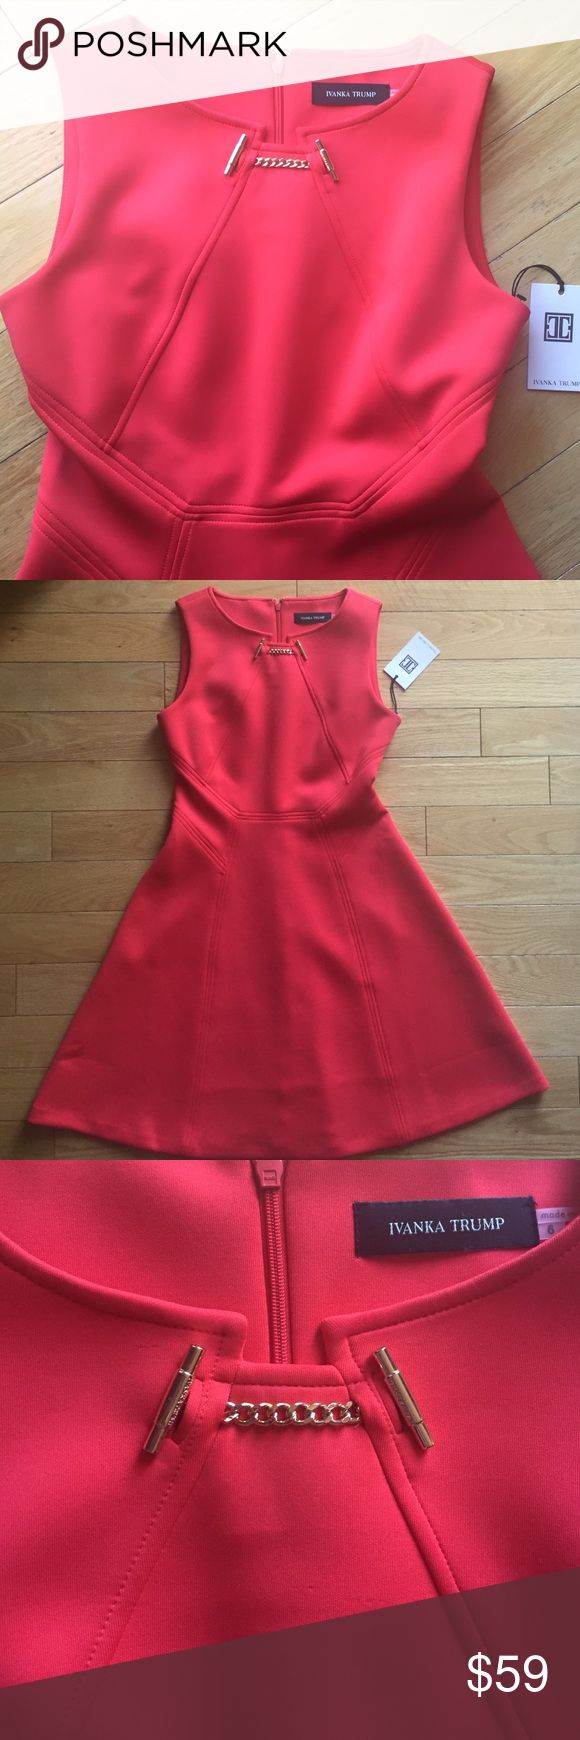 🆕 NWT Ivanka Trump 🎉 cocktail/holiday dress Eye popping color! Red holiday/event/cocktail dress. Gold accent across the top.  Flattering for every body type. 92% polyester, 8% spandex (perfect for overindulging during those holiday parties) Ivanka Trump Dresses Midi